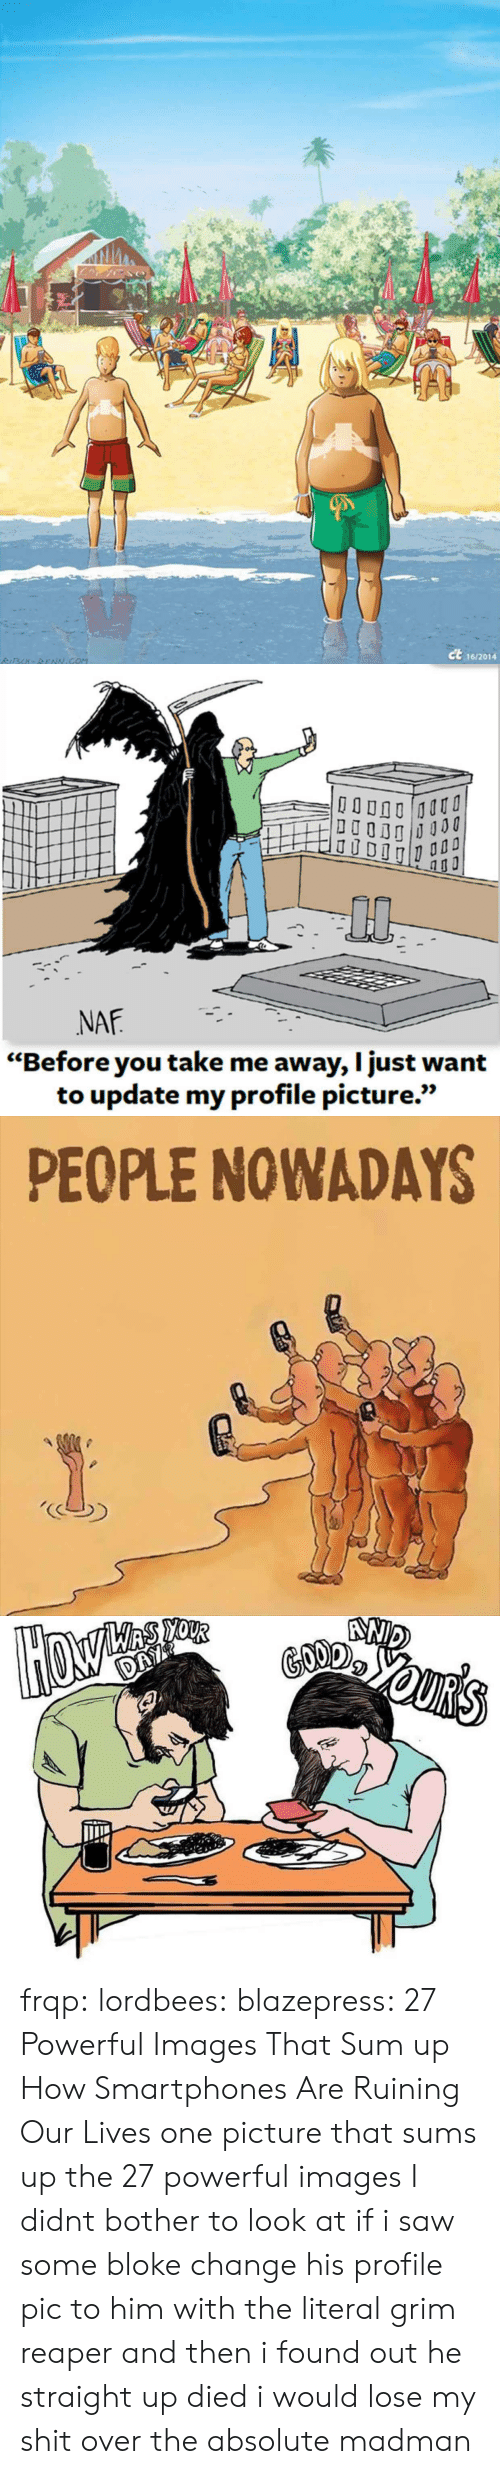 """grim reaper: ct  16/2014   0p  NAF  """"Before you take me away, I just want  to update my profile picture.""""  เเว   PEOPLE NOWADAYS frqp:  lordbees:  blazepress:  27 Powerful Images That Sum up How Smartphones Are Ruining Our Lives   one picture that sums up the 27 powerful images I didnt bother to look at   if i saw some bloke change his profile pic to him with the literal grim reaper and then i found out he straight up died i would lose my shit over the absolute madman"""